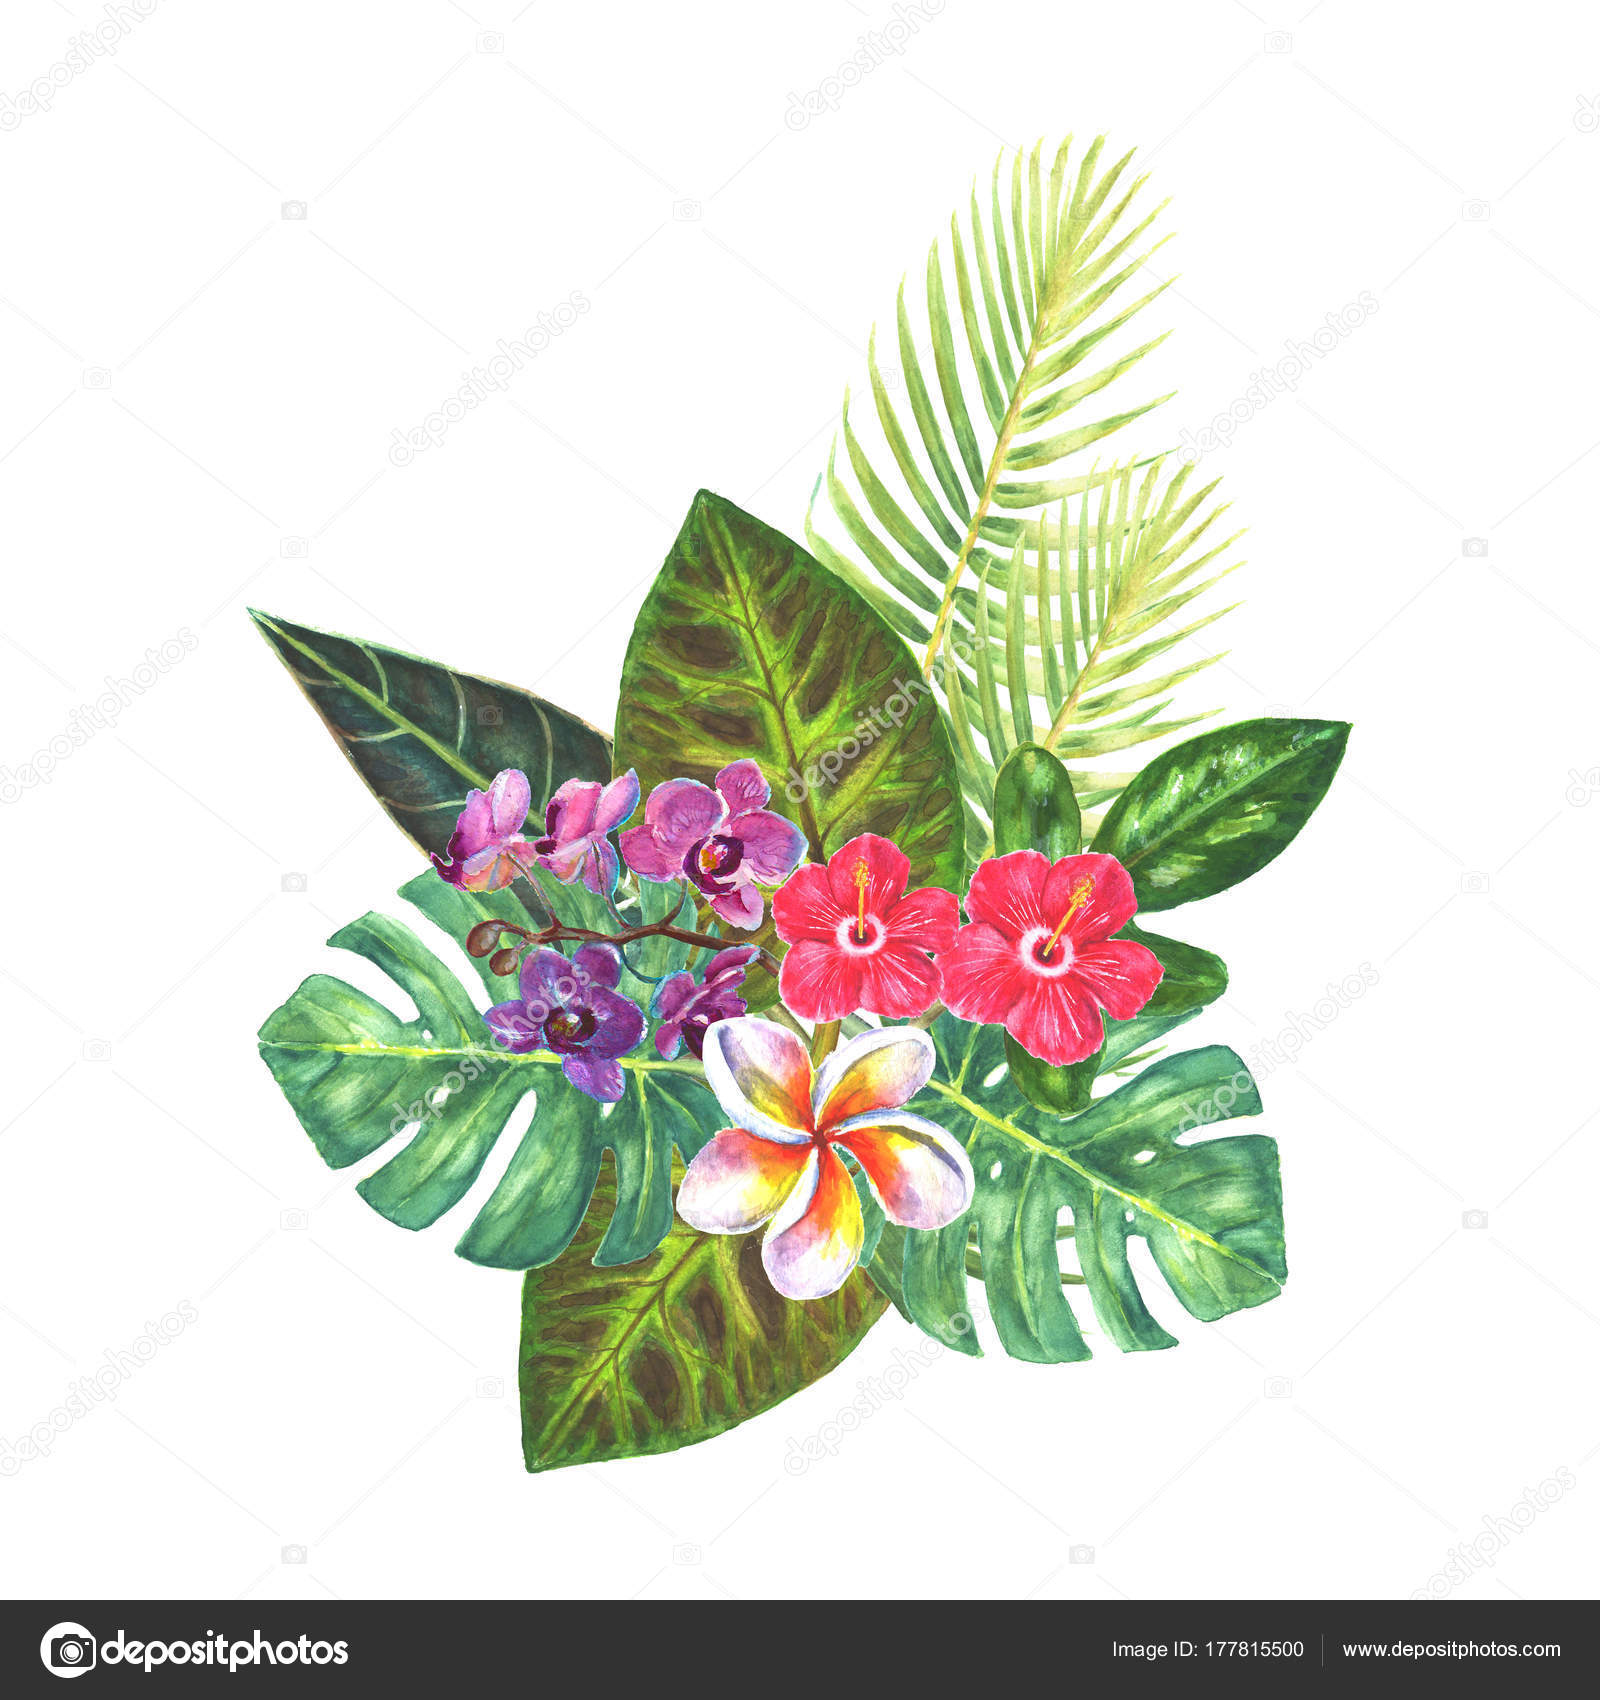 Exotic tropical flowers bouquet — Stock Photo © OlgaZe #177815500